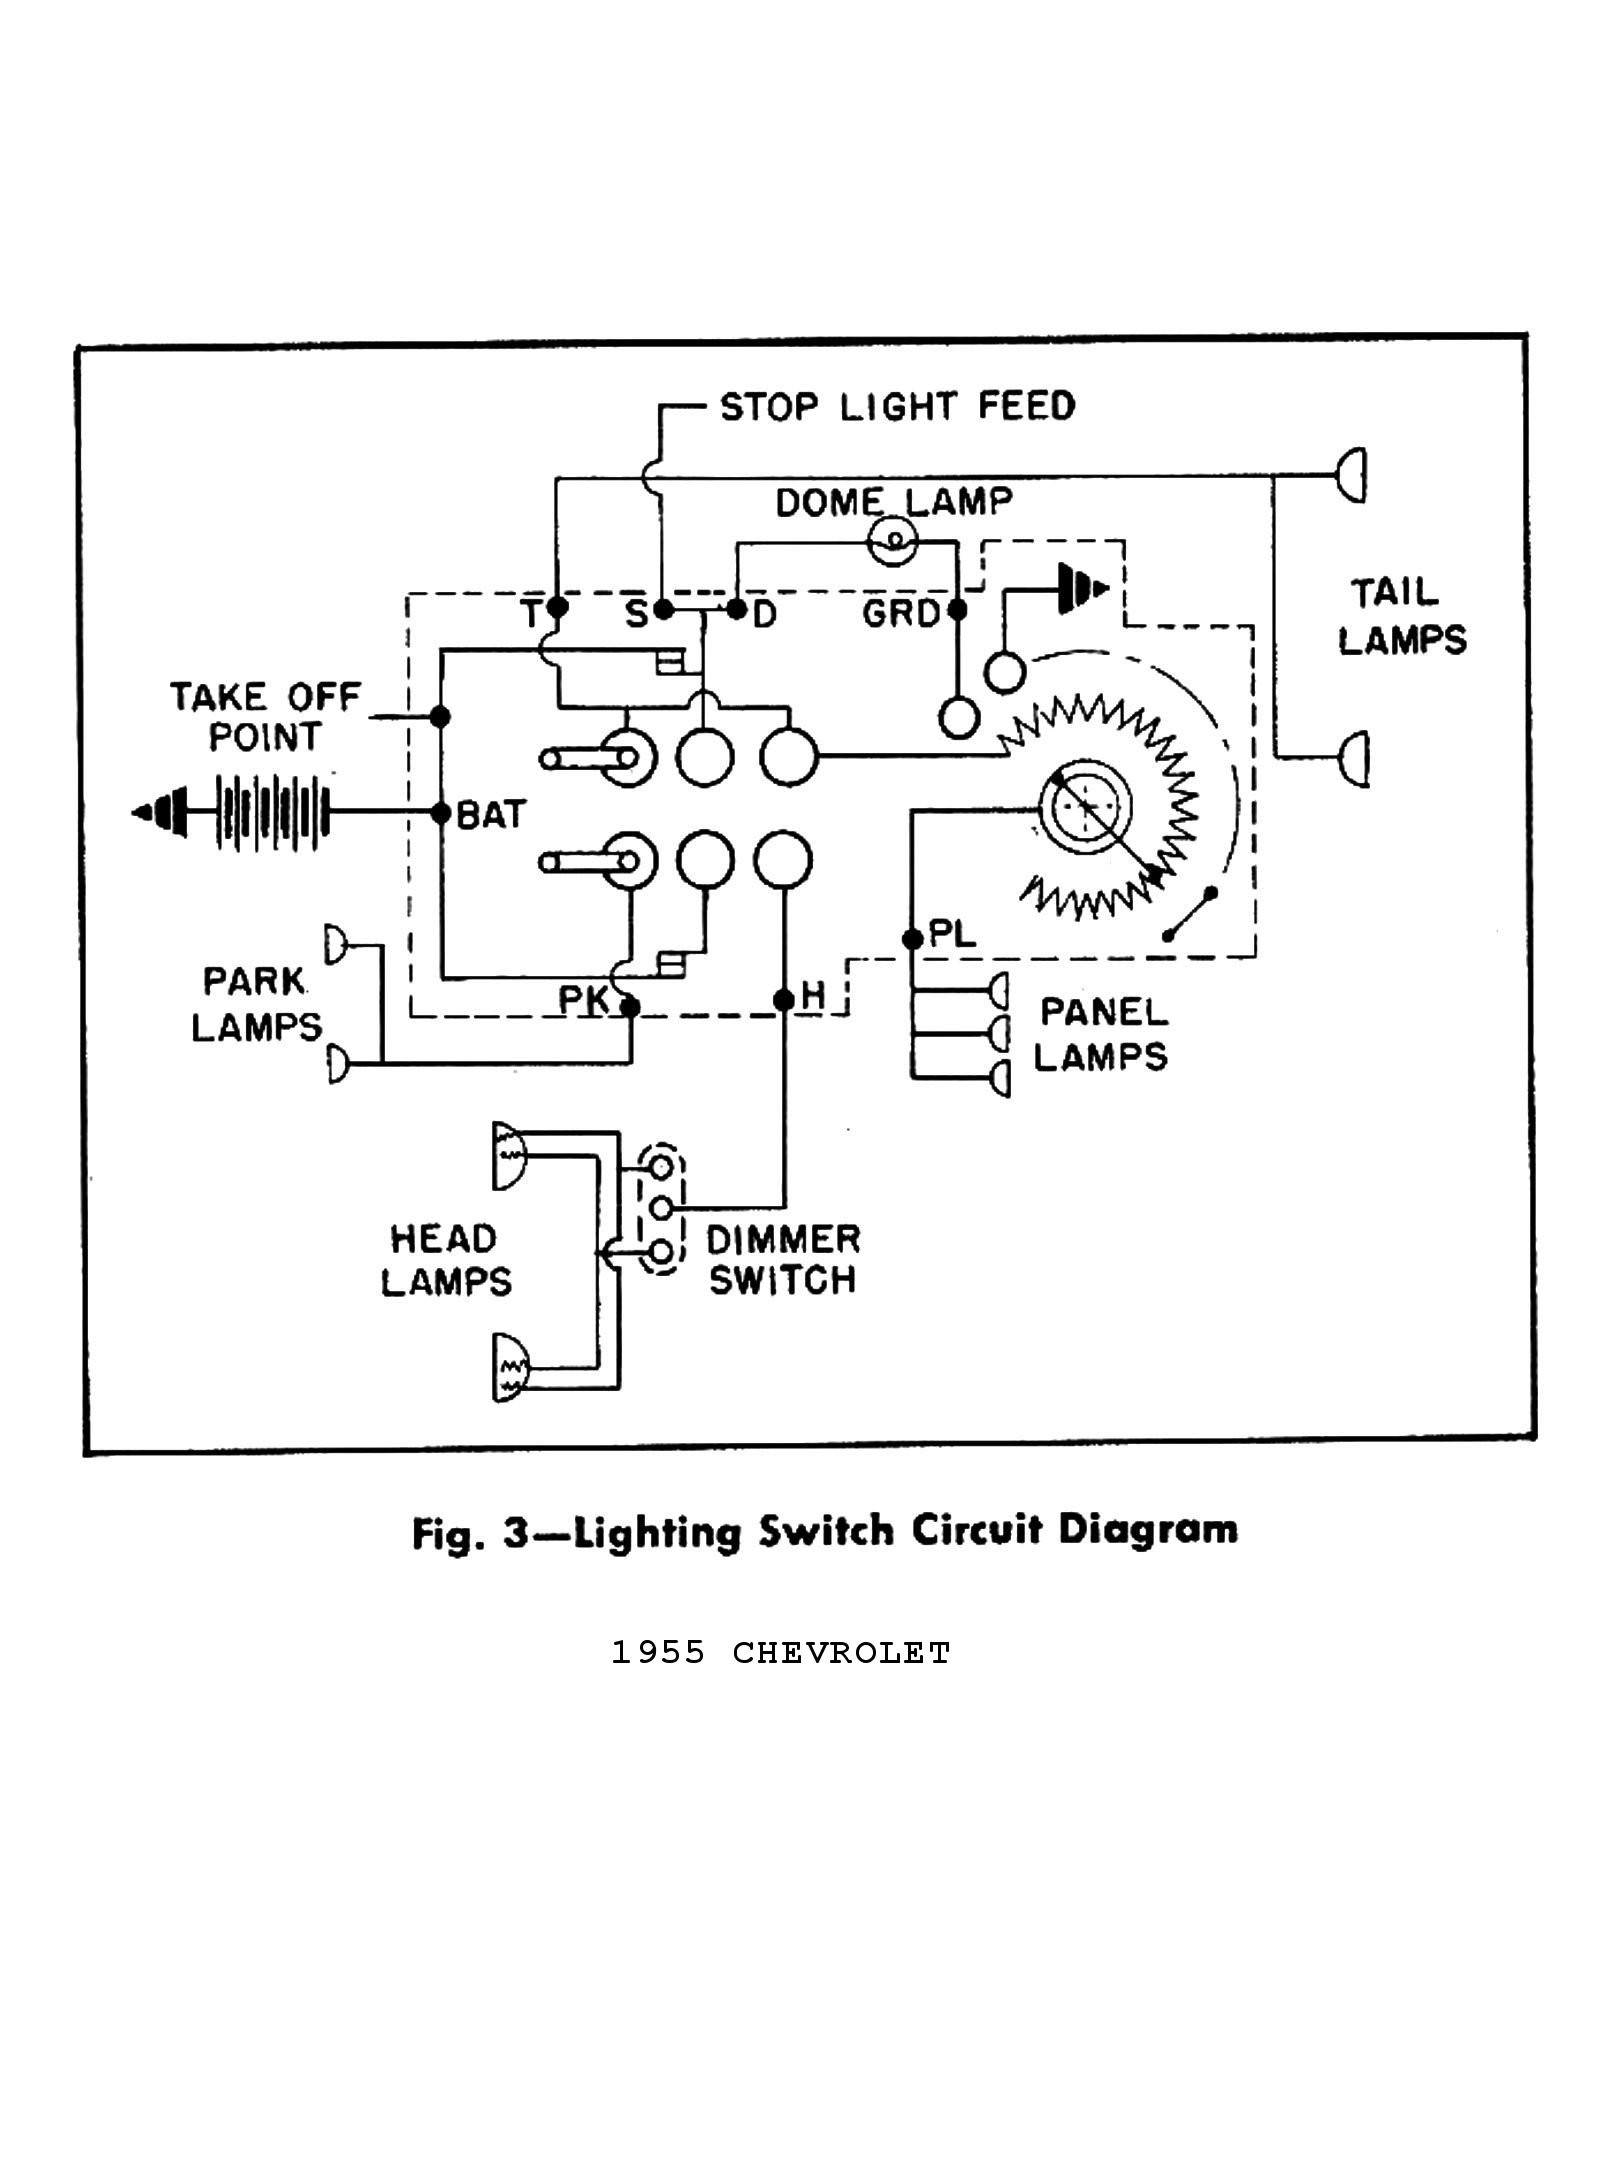 safety switch wiring diagram Collection-Wiring Diagram for Neutral Safety Switch Inspirationa Safety Switch Wiring Diagram Inspirational Chevy Wiring Diagrams 18-t